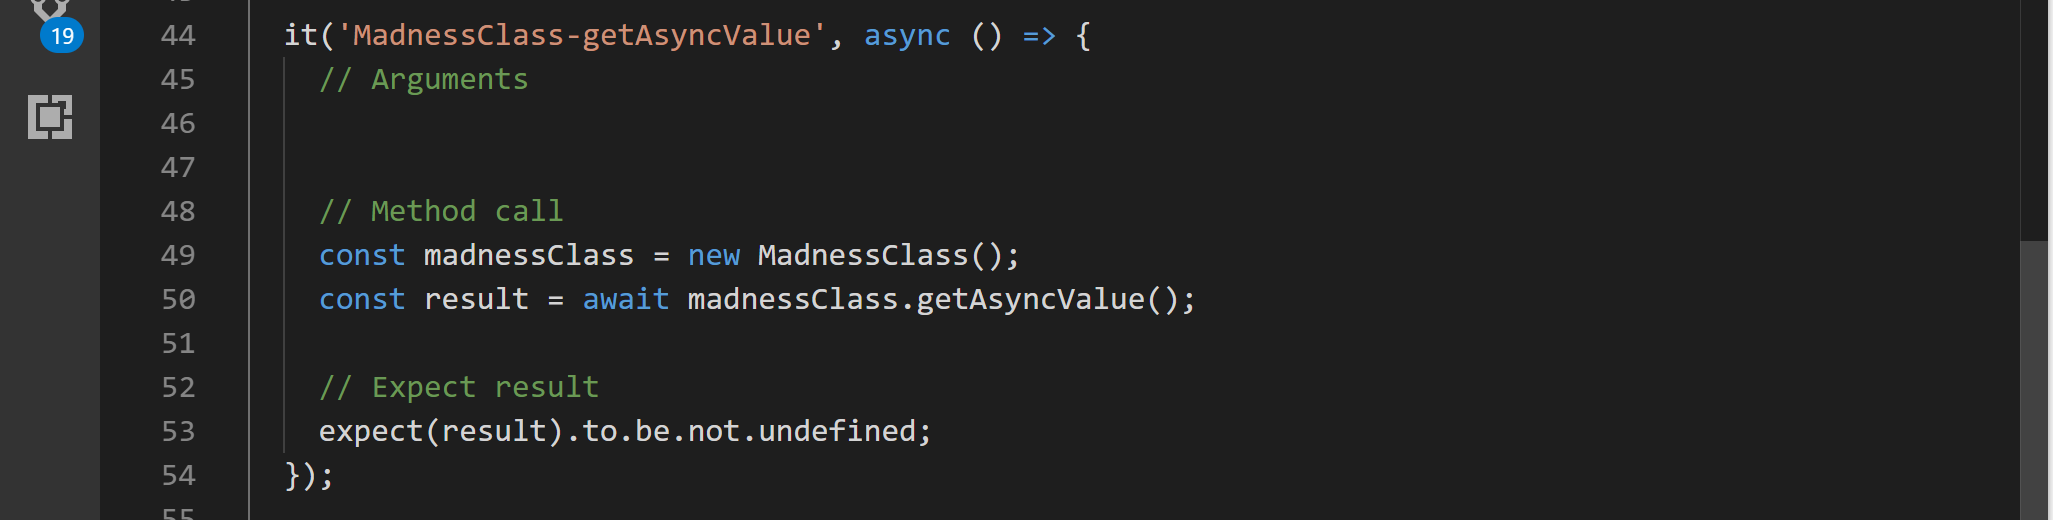 Async method test with return value